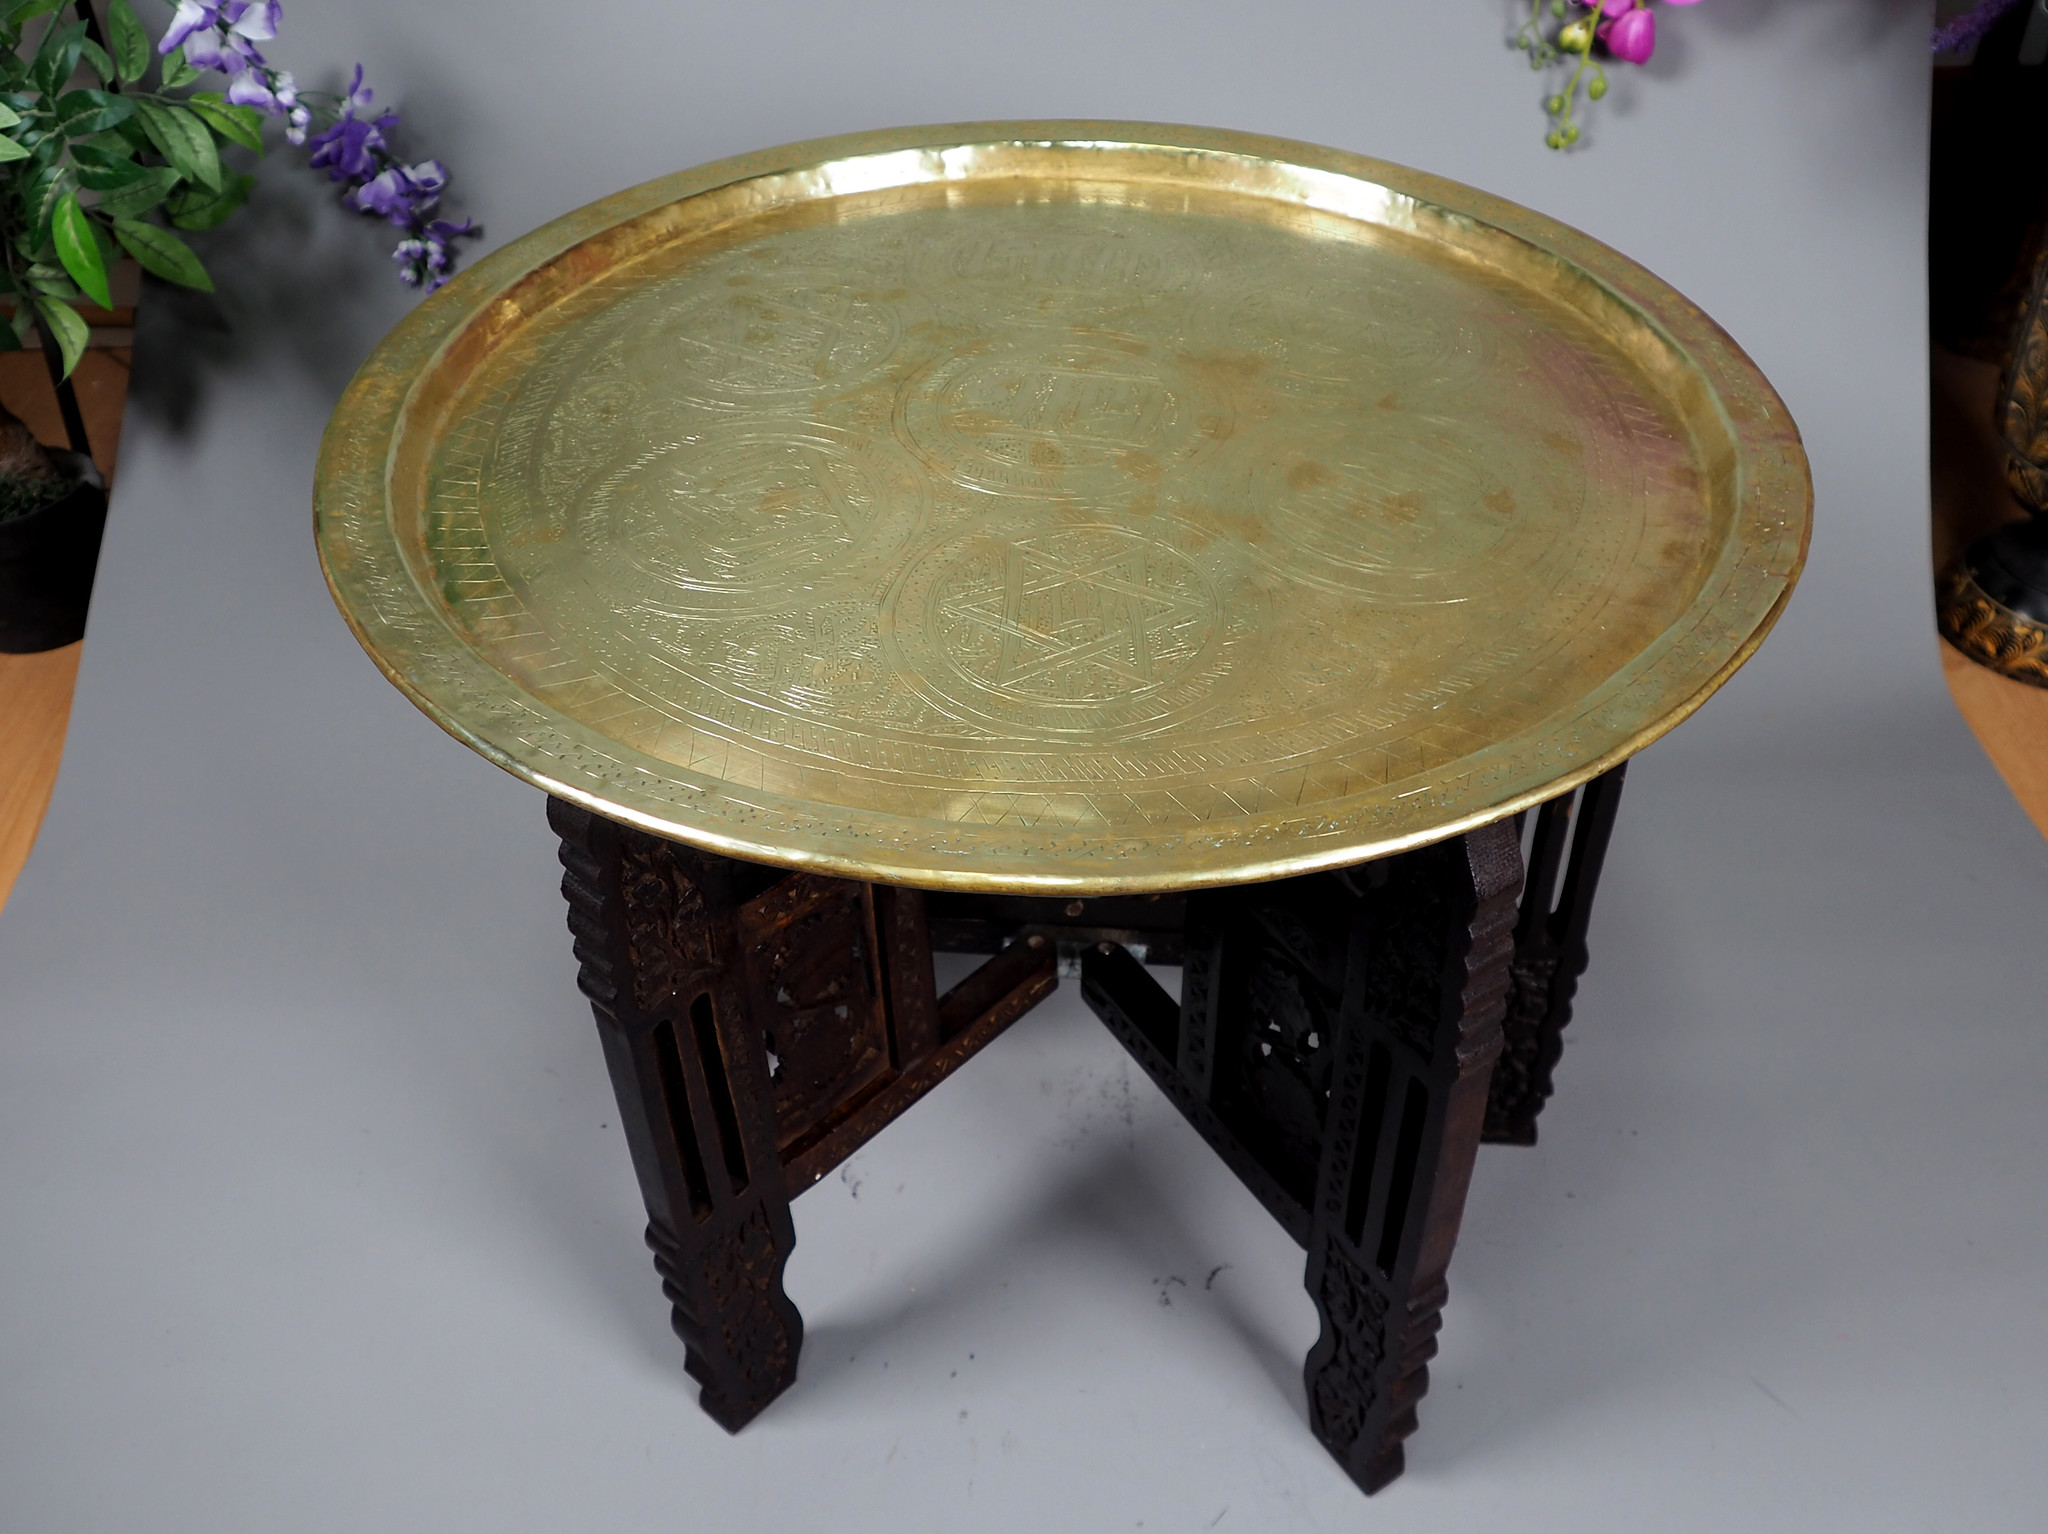 60 cm Antique ottoman orient Islamic ottoman Hammer Engraved Brass table Tray Syria Morocco, Egypt with arabic script calligraphy  No-21/C